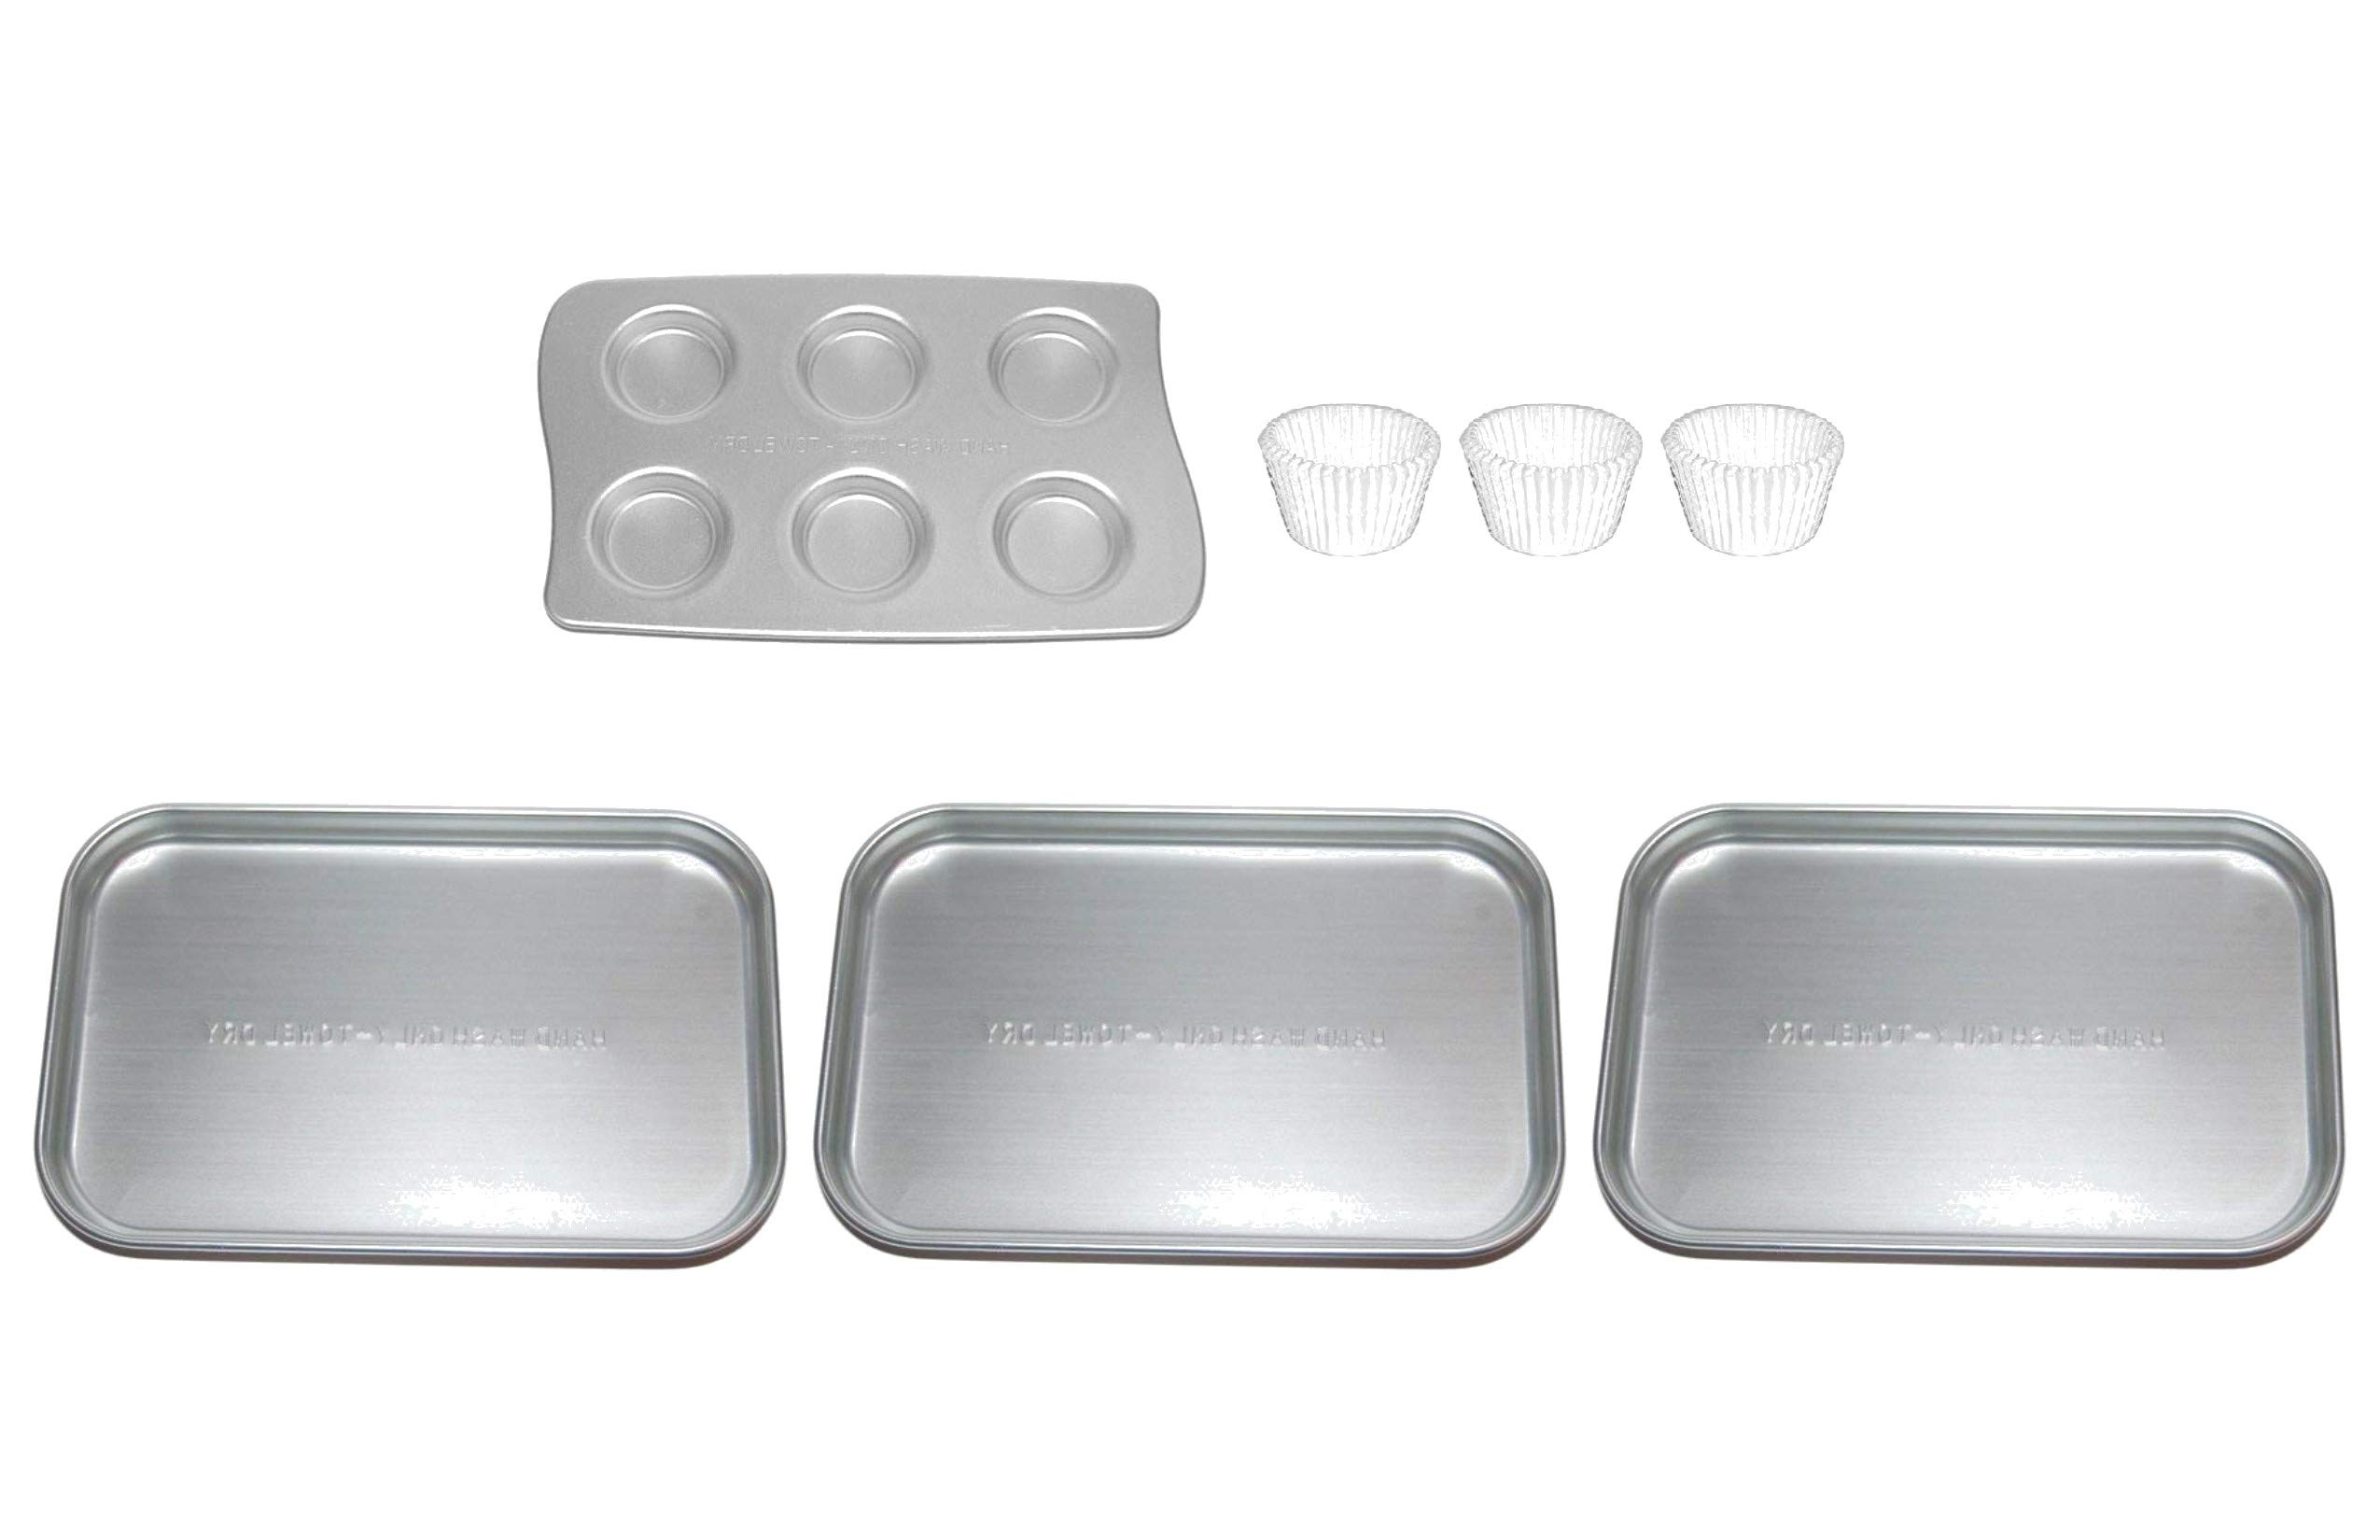 Easy Bake Ultimate Oven 3 Rectangular Replacement Pans Bundled with 1 Cupcake Pan Including 36 Bonus Cupcake Liners - by Easy Bake Oven